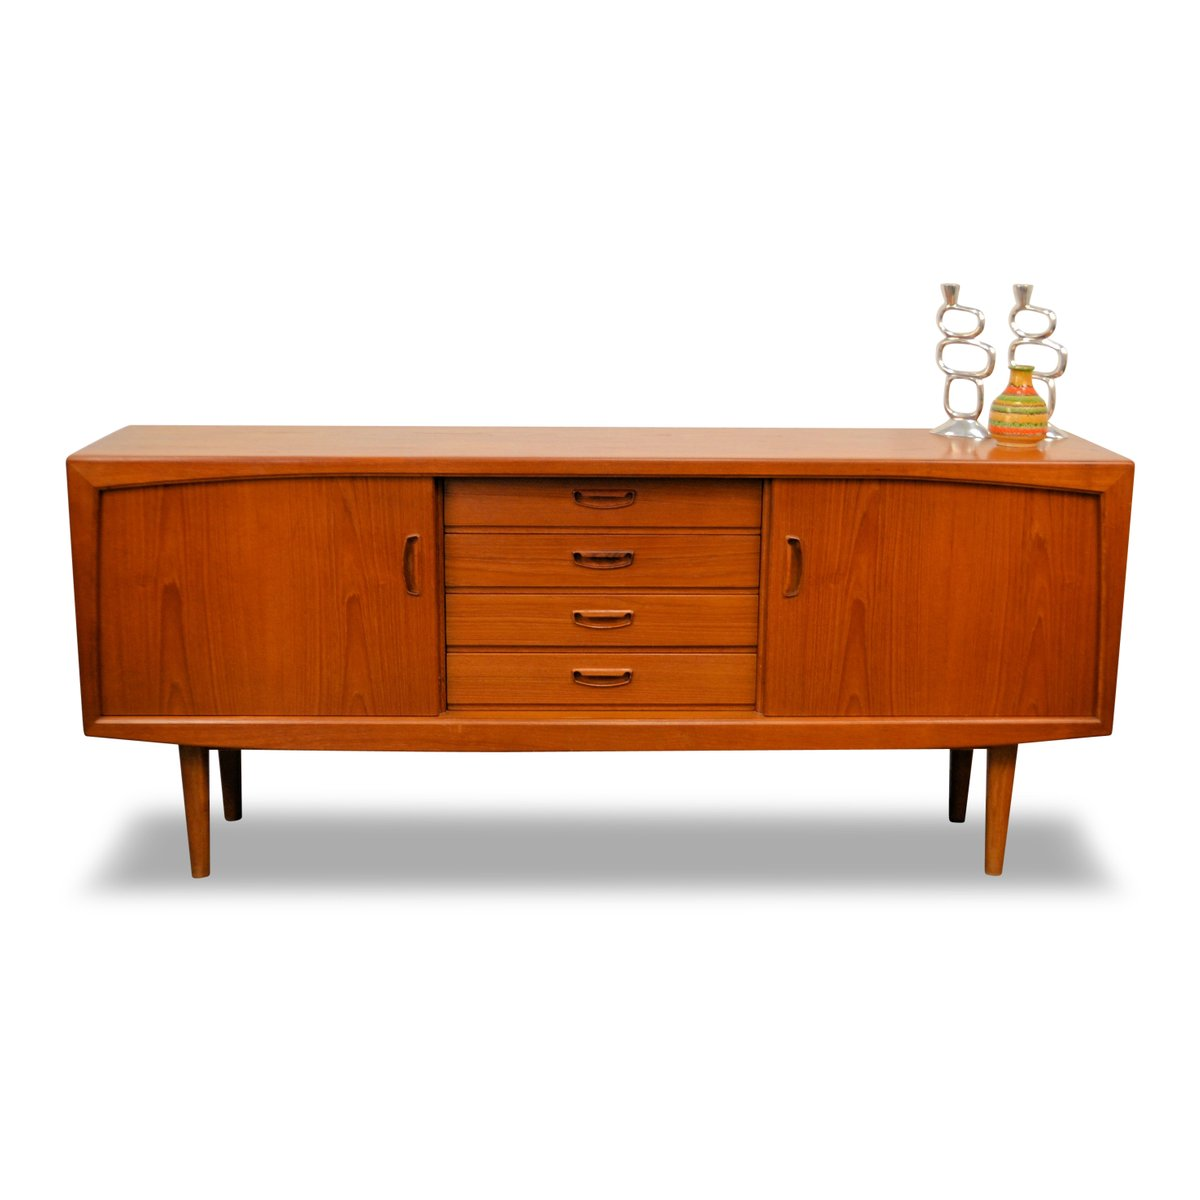 Mid century danish teak sideboard with sliding doors - Sideboard mid century ...